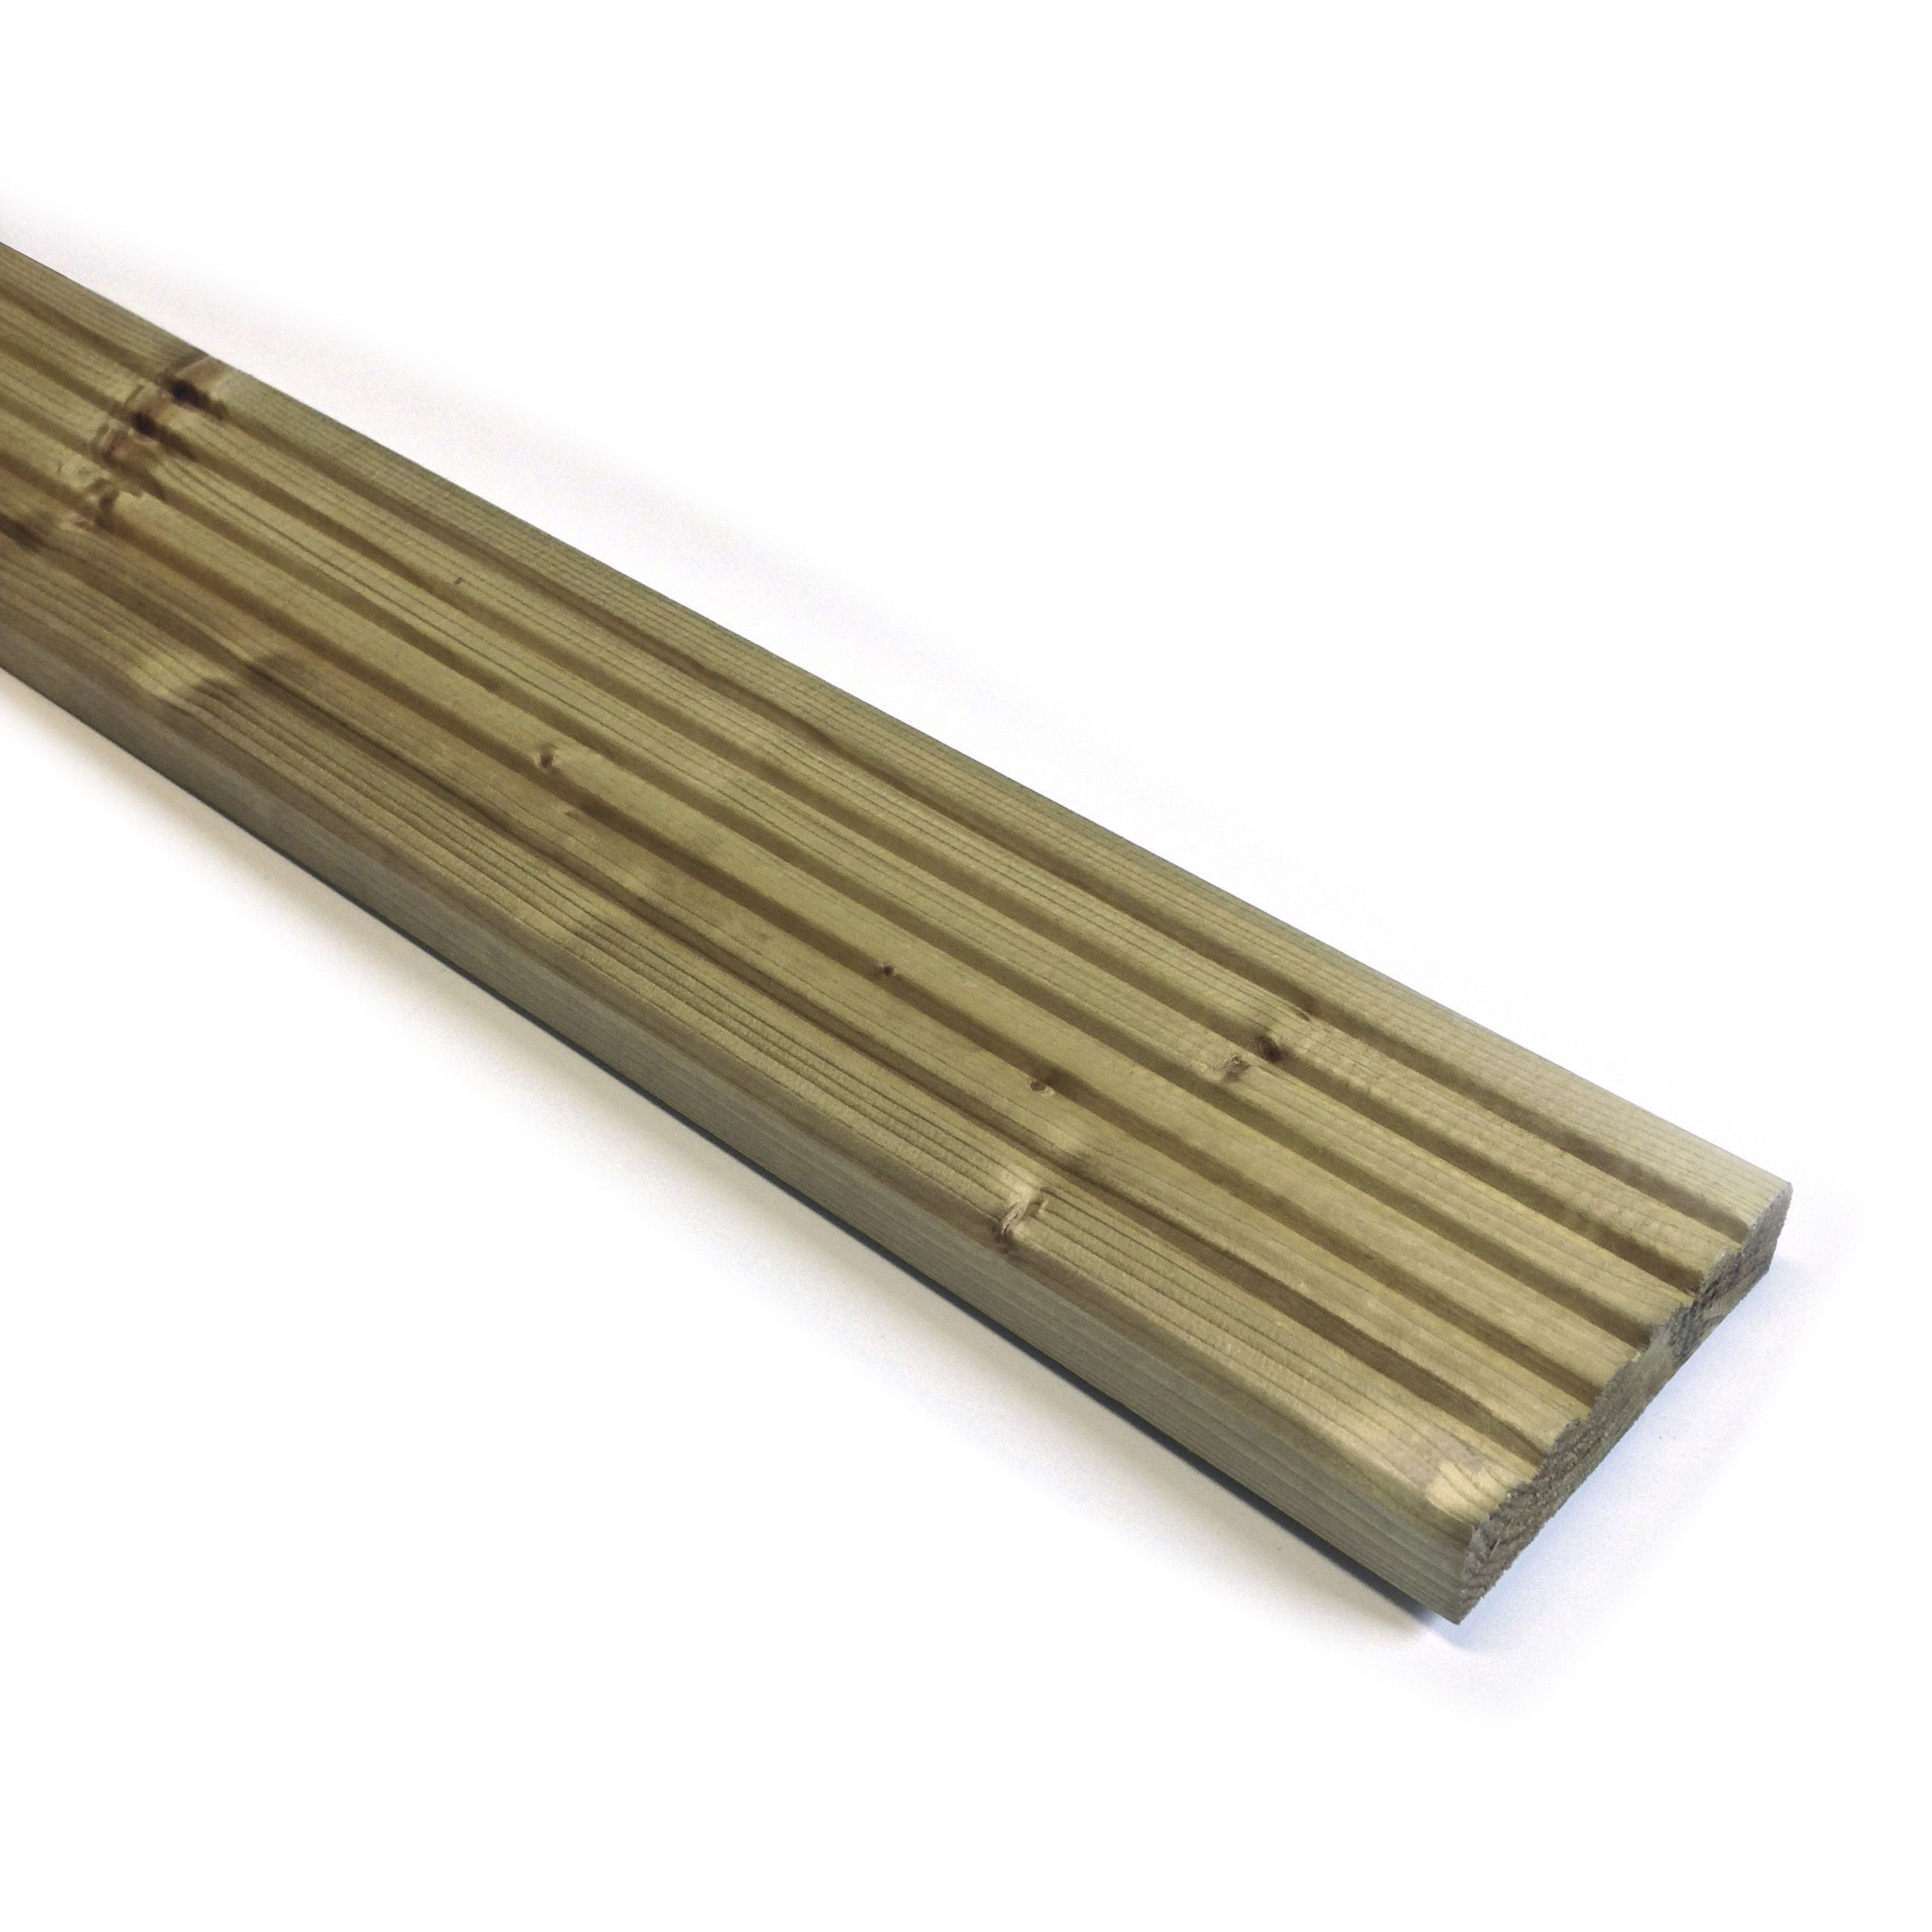 Softwood deck board t 25mm w 95mm l 1800mm for Softwood decking boards